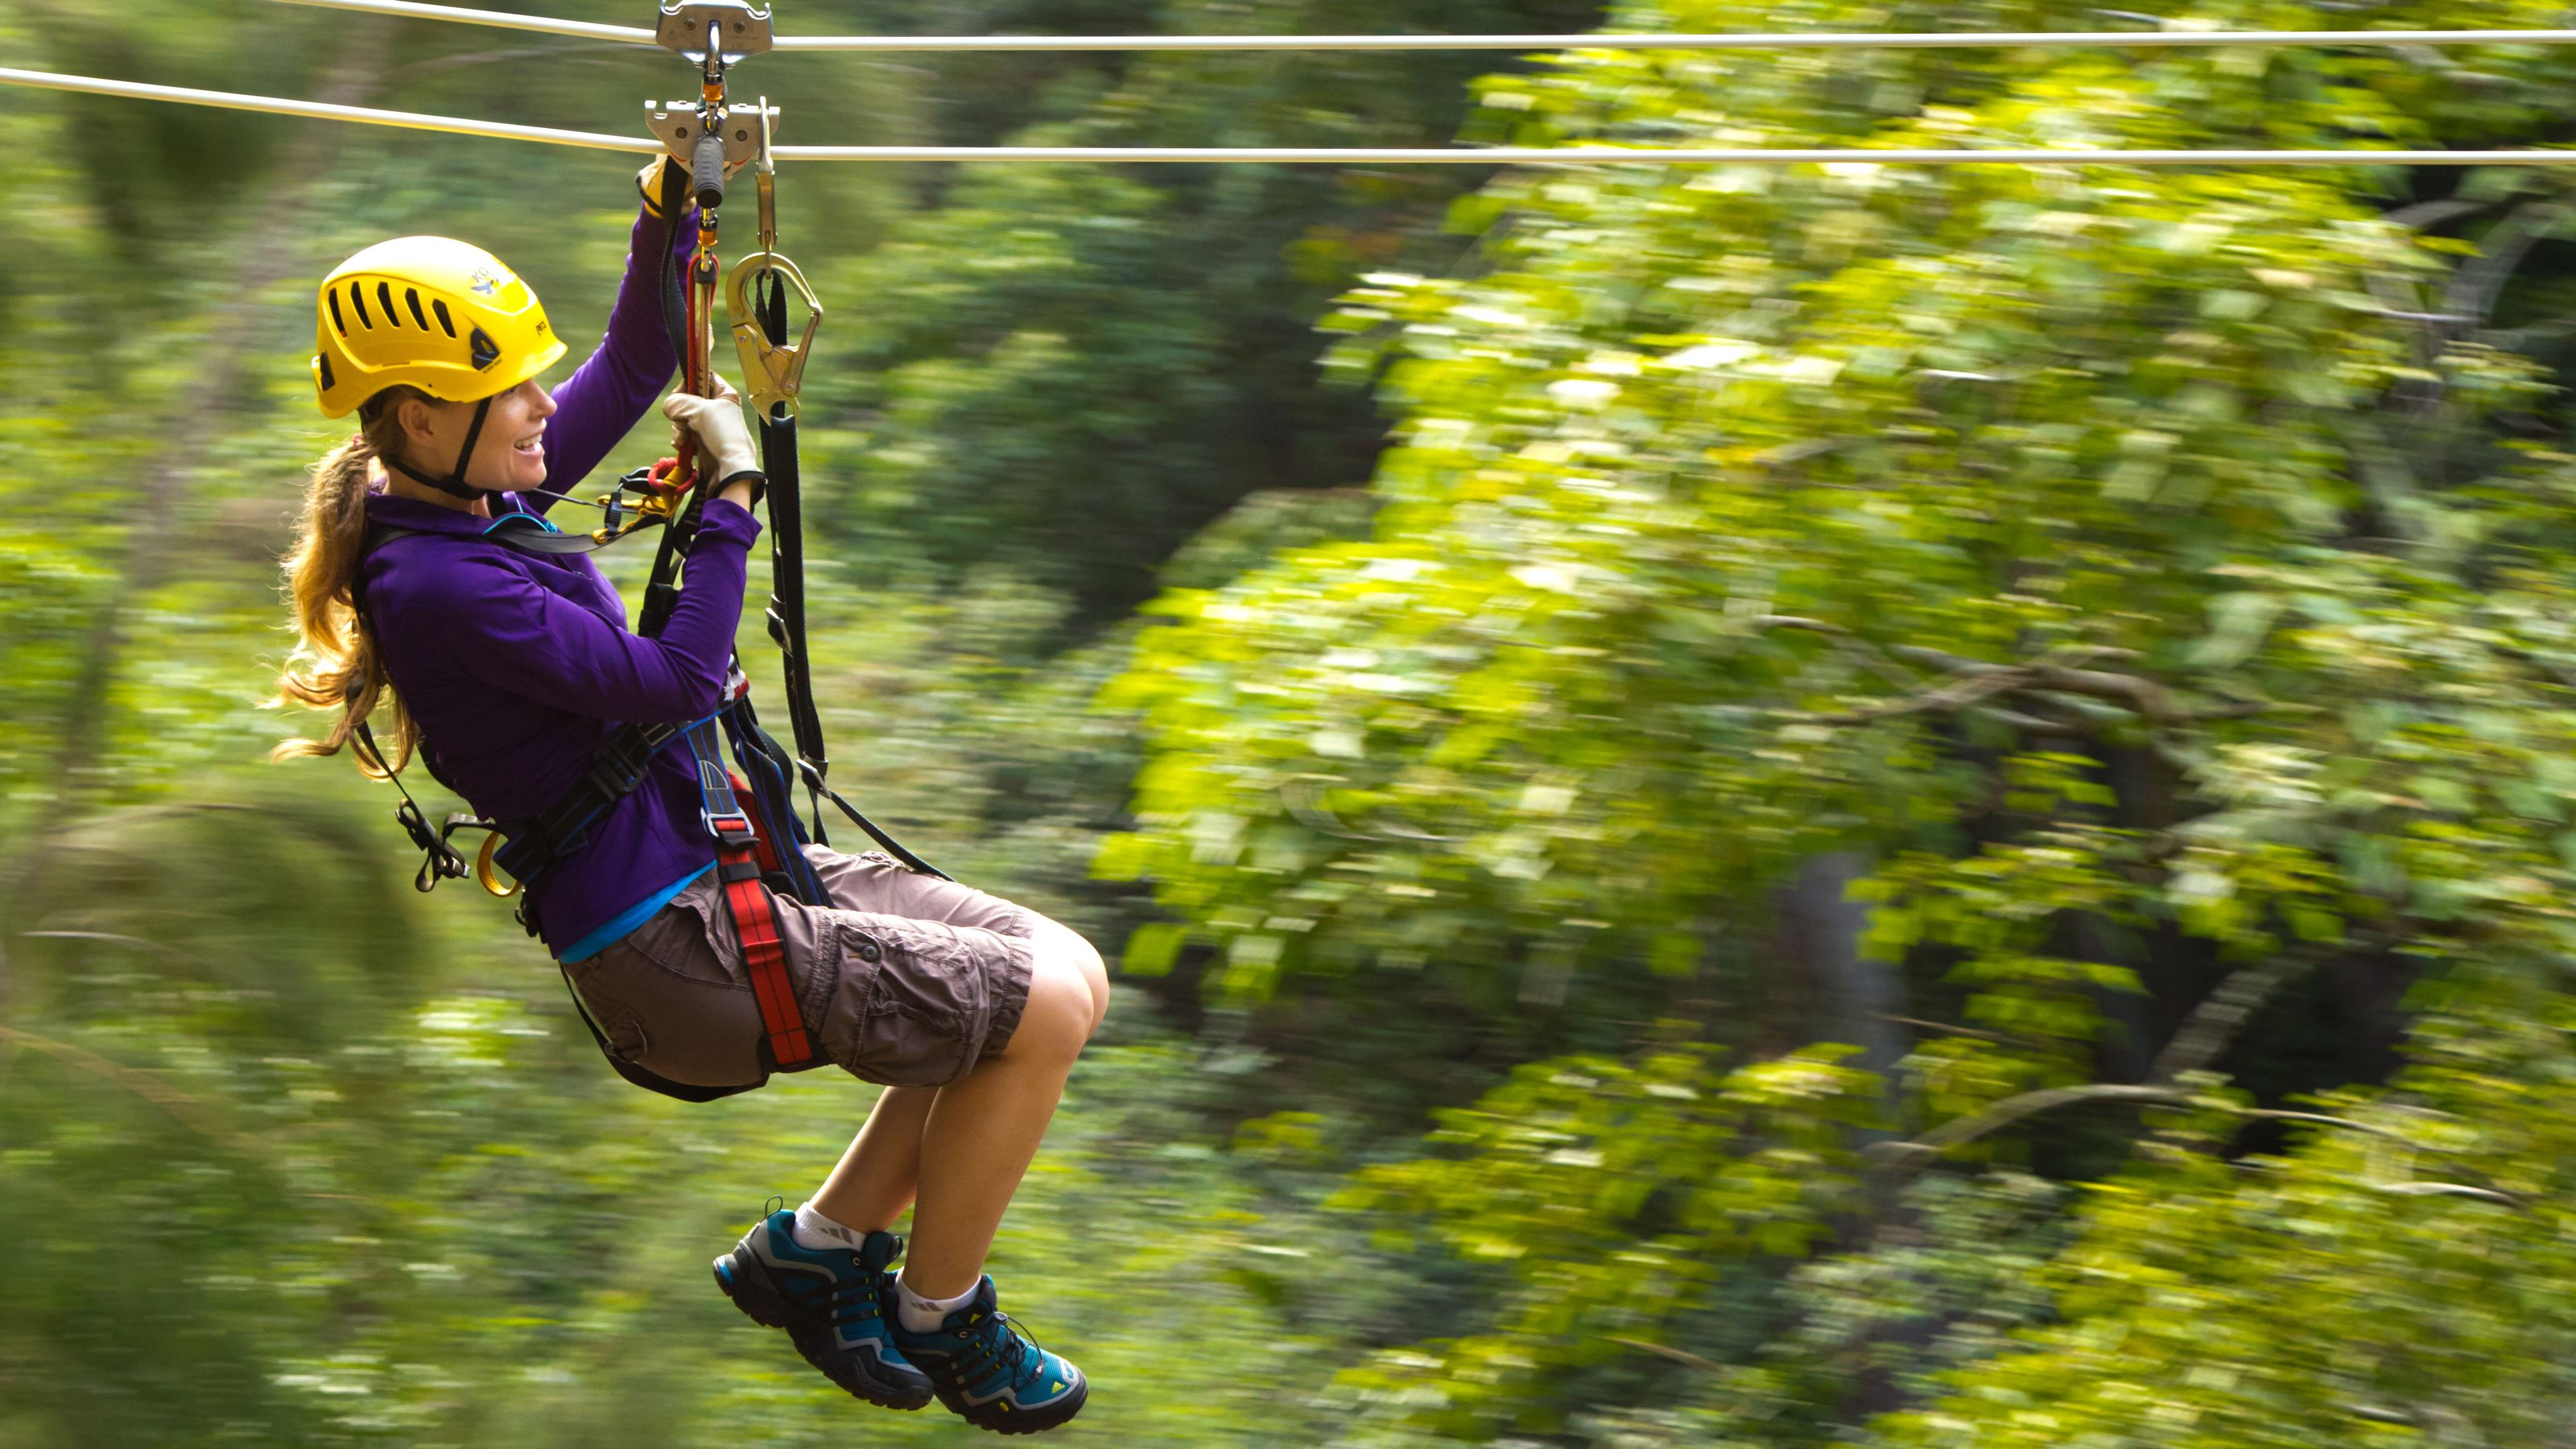 A woman ziplining through a forest in Hawaii